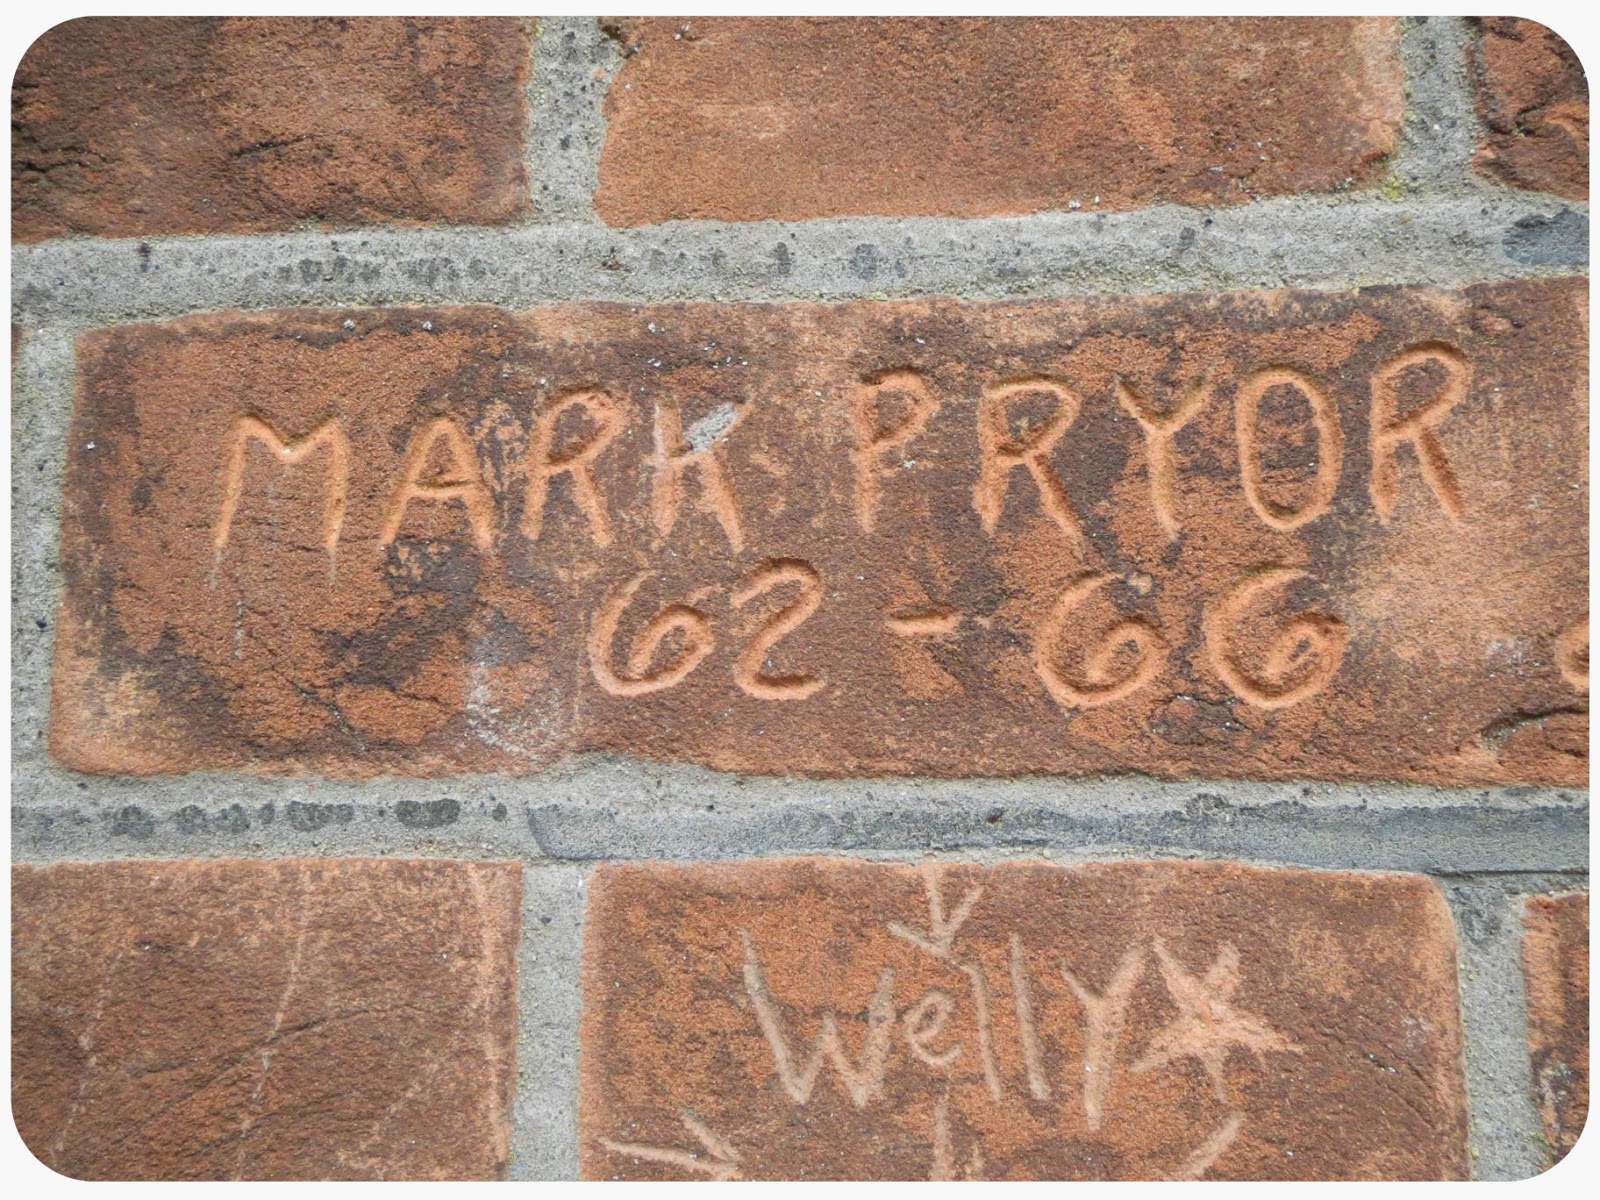 Upon graduation, all students sign the brick wall